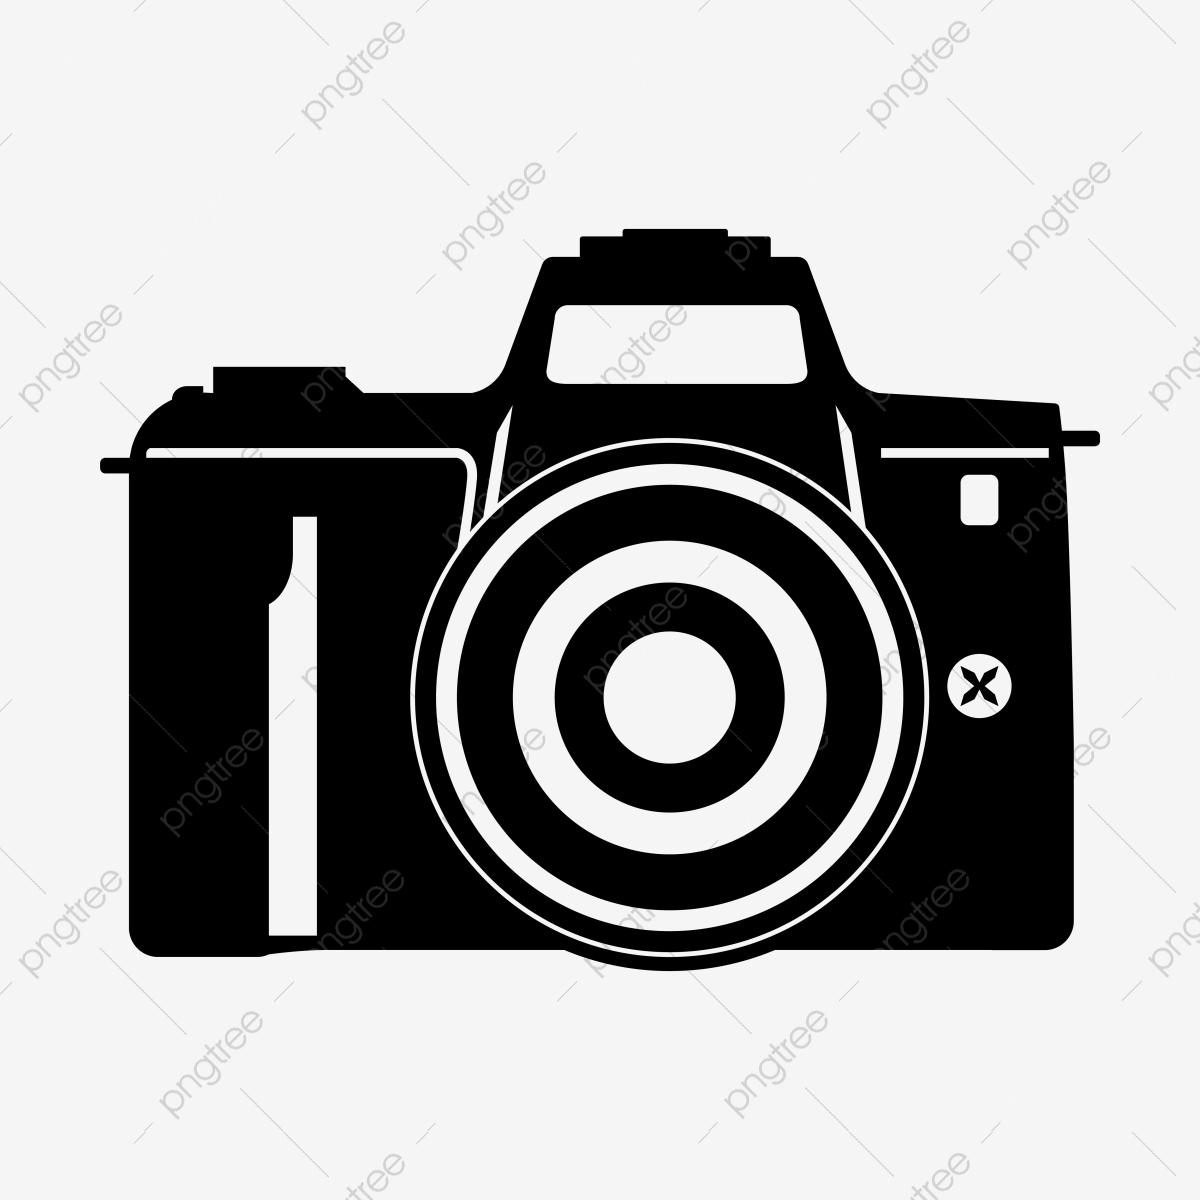 Camera Photos Logo Icon Vector Free Logo Design Template Camera Lens Photos Png And Vector With Transparent Background For Free Download